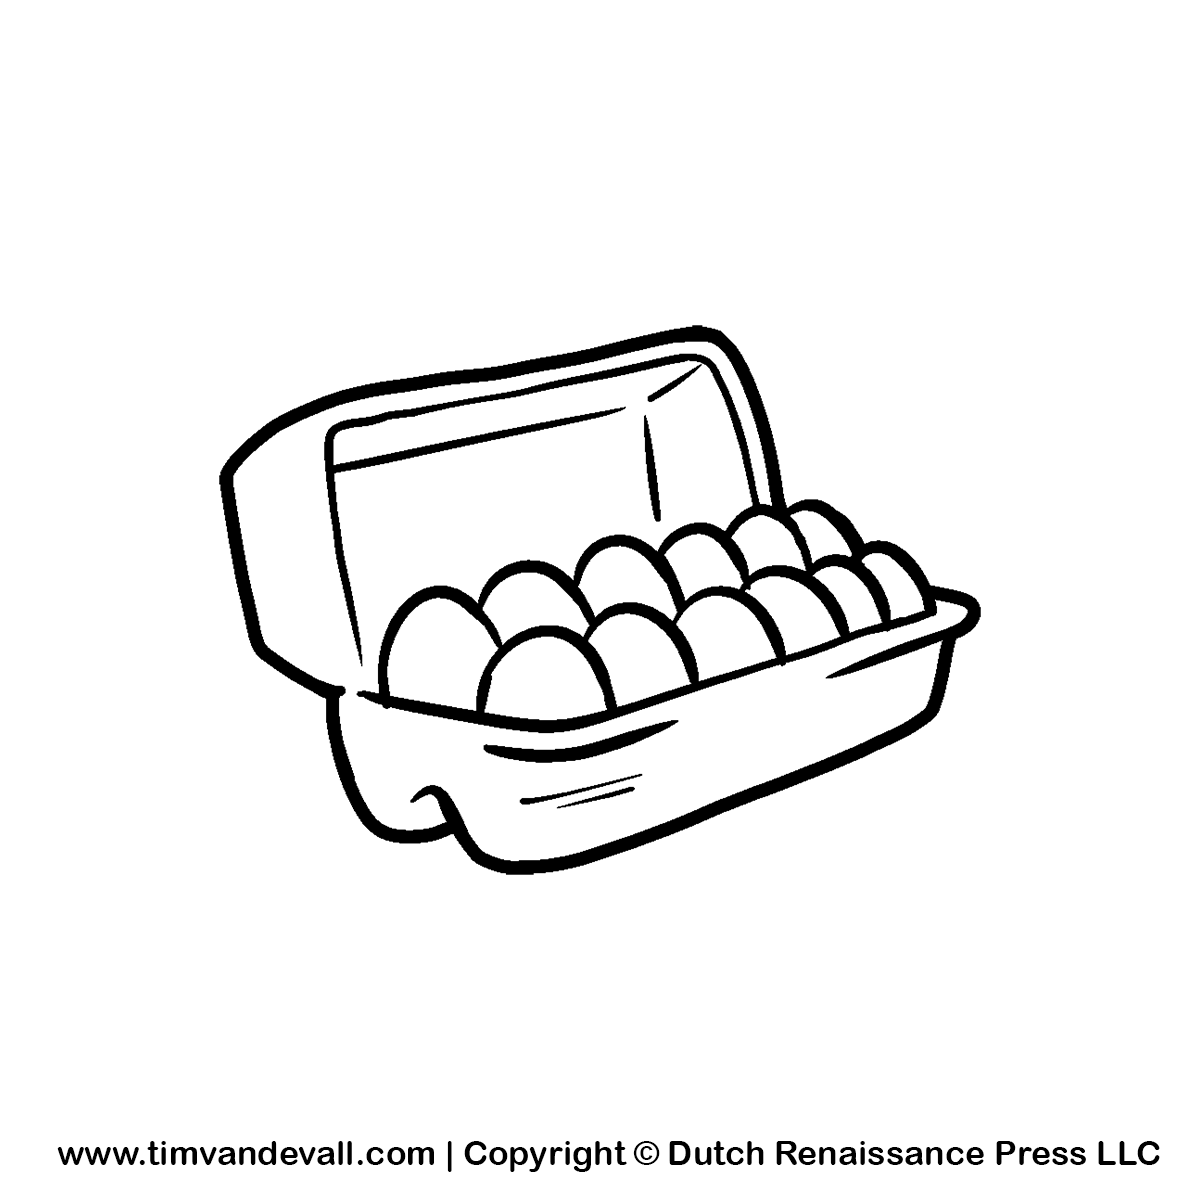 Go Back   Images For   Empty Egg Carton Clipart Black And White